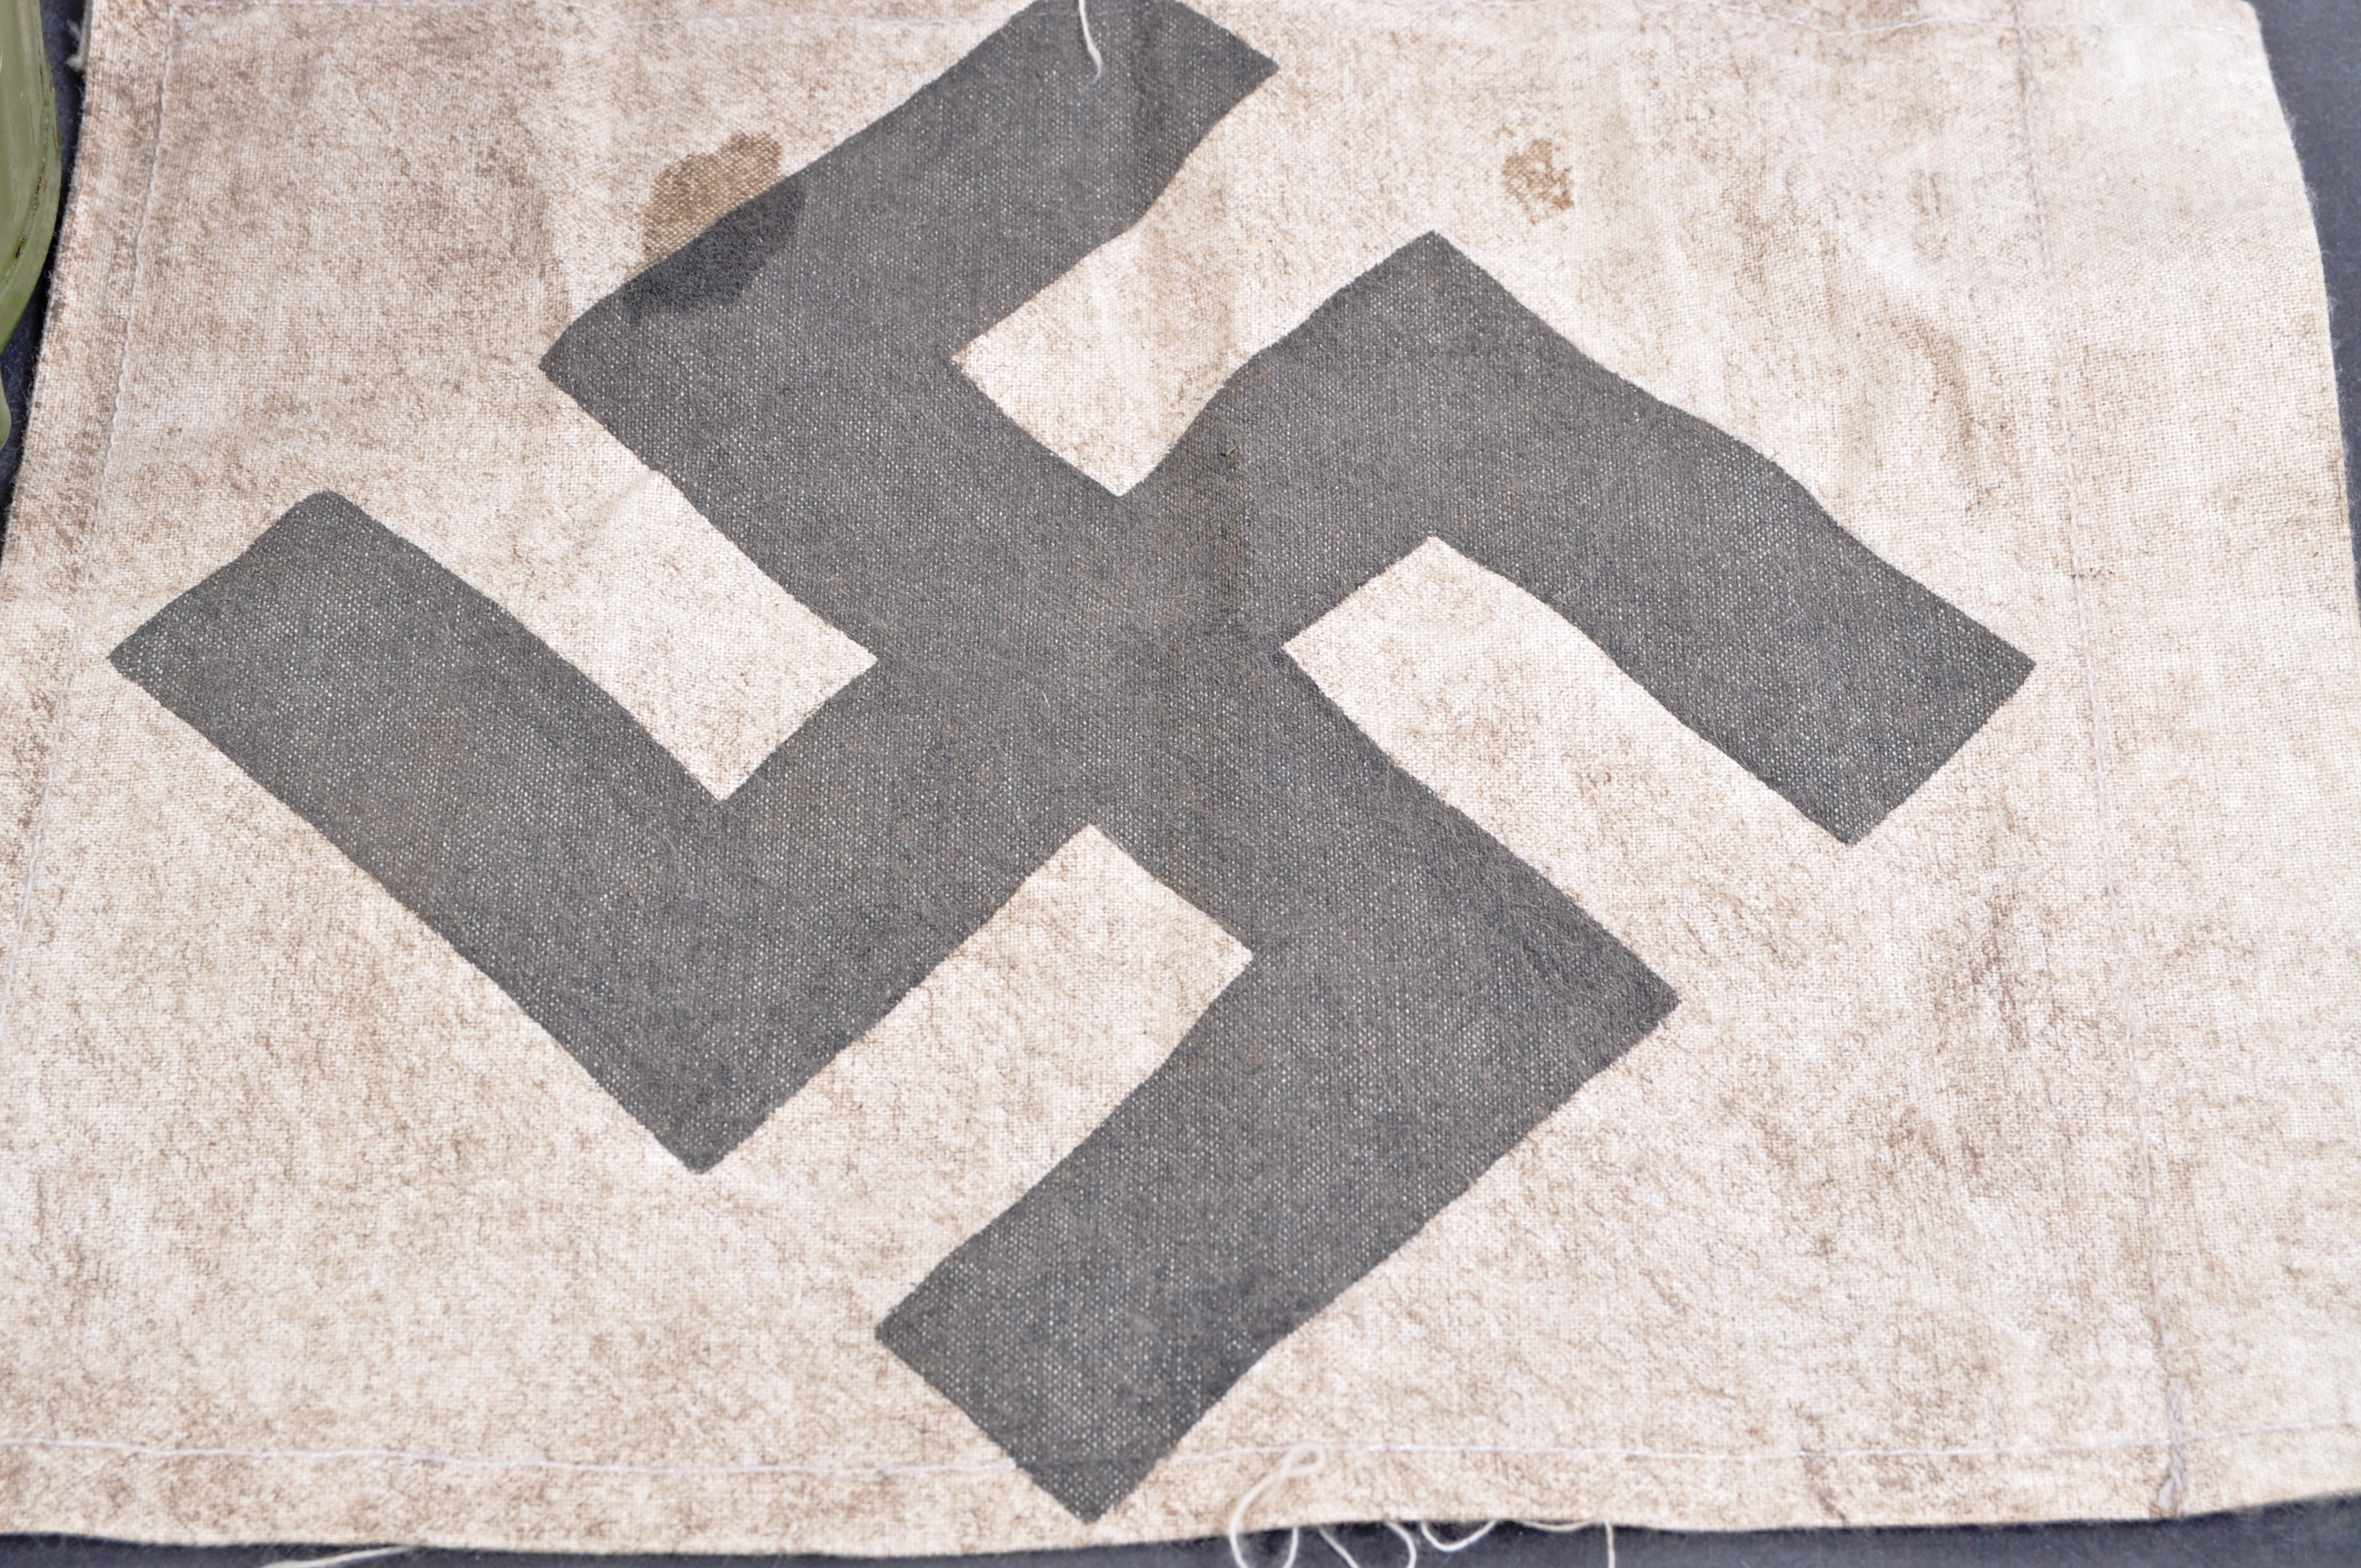 TWO WWII SECOND WORLD WAR TYPE GERMAN REPLICA ITEMS - Image 2 of 9